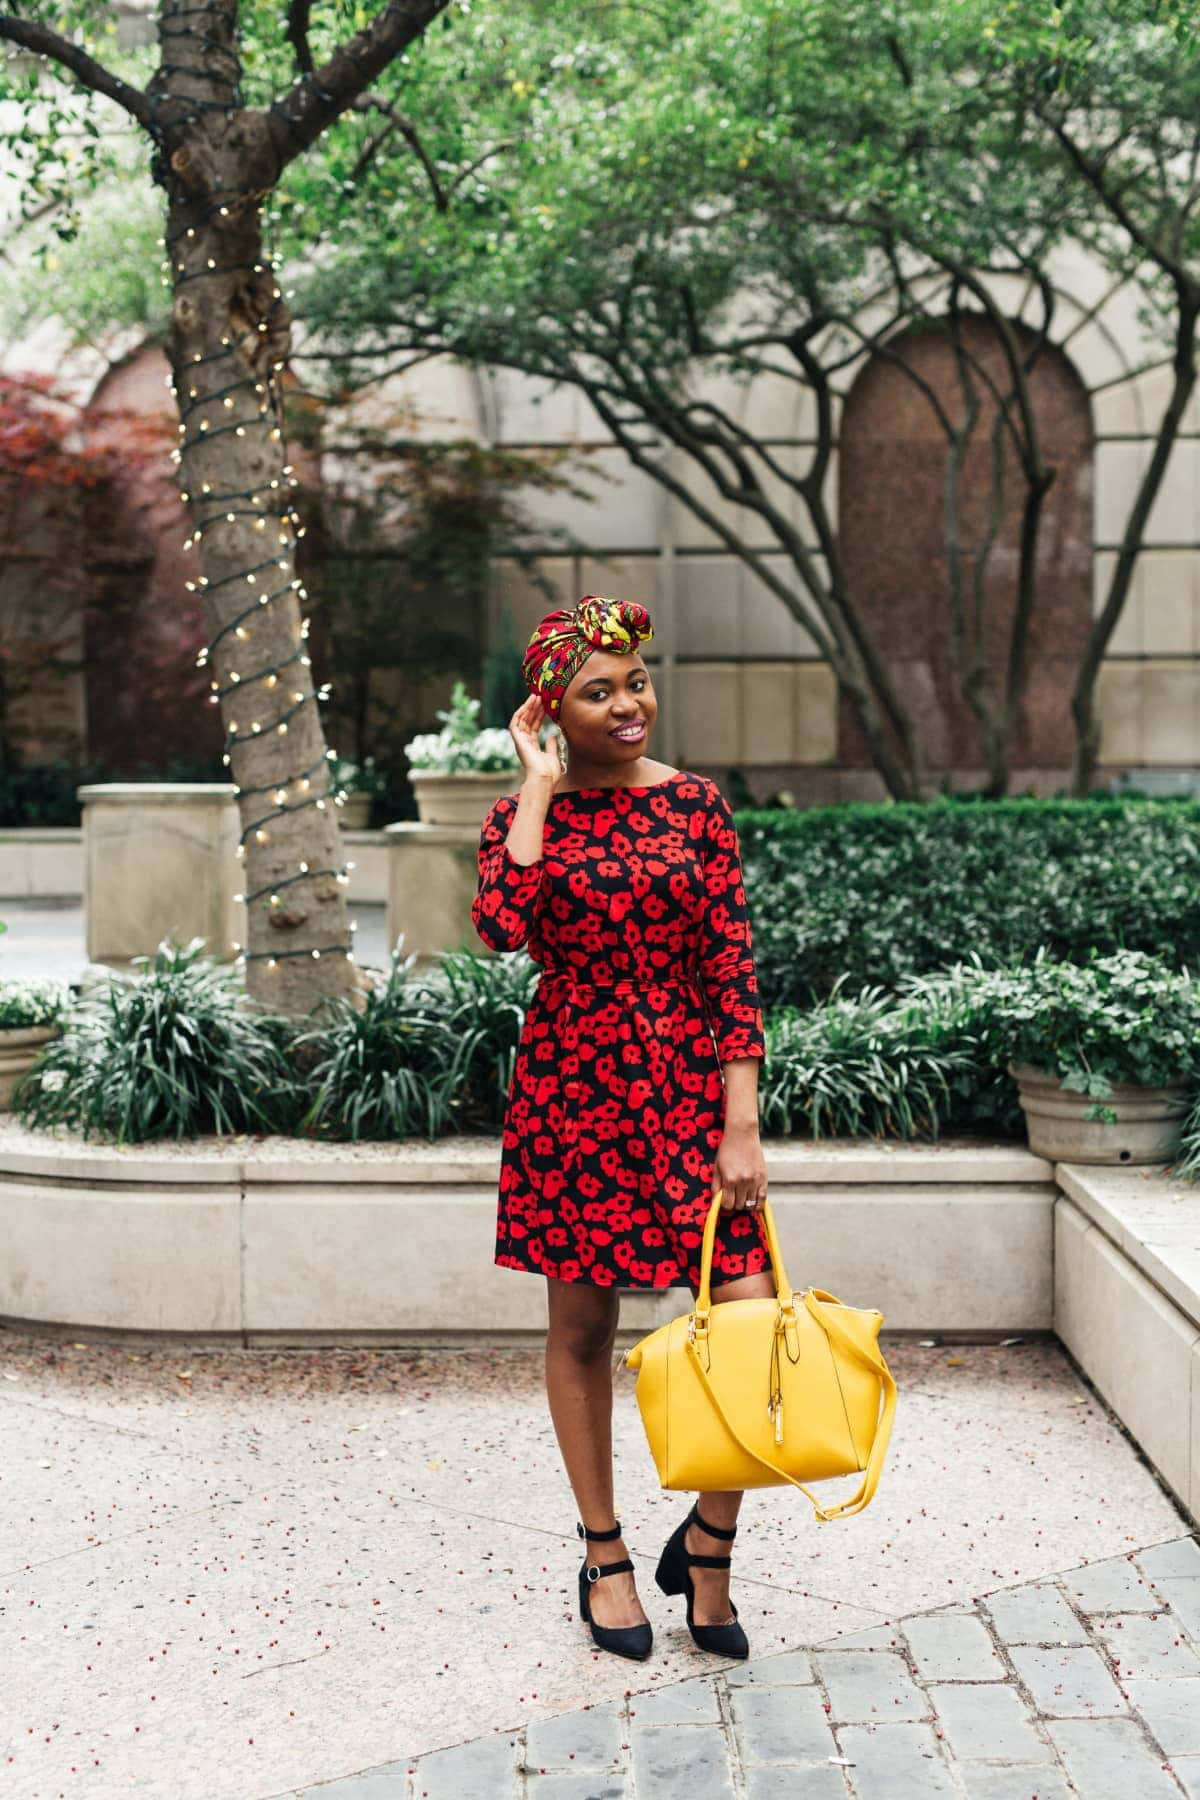 Sharing a stunning ankara scarf and summer dress outfit with you today. And a roundup of the best genuine ankara head ties and where to get them for cheap today. Keep reading to get the details. #africanfashionoutfits #summerstyle #ankarafashion #headwear